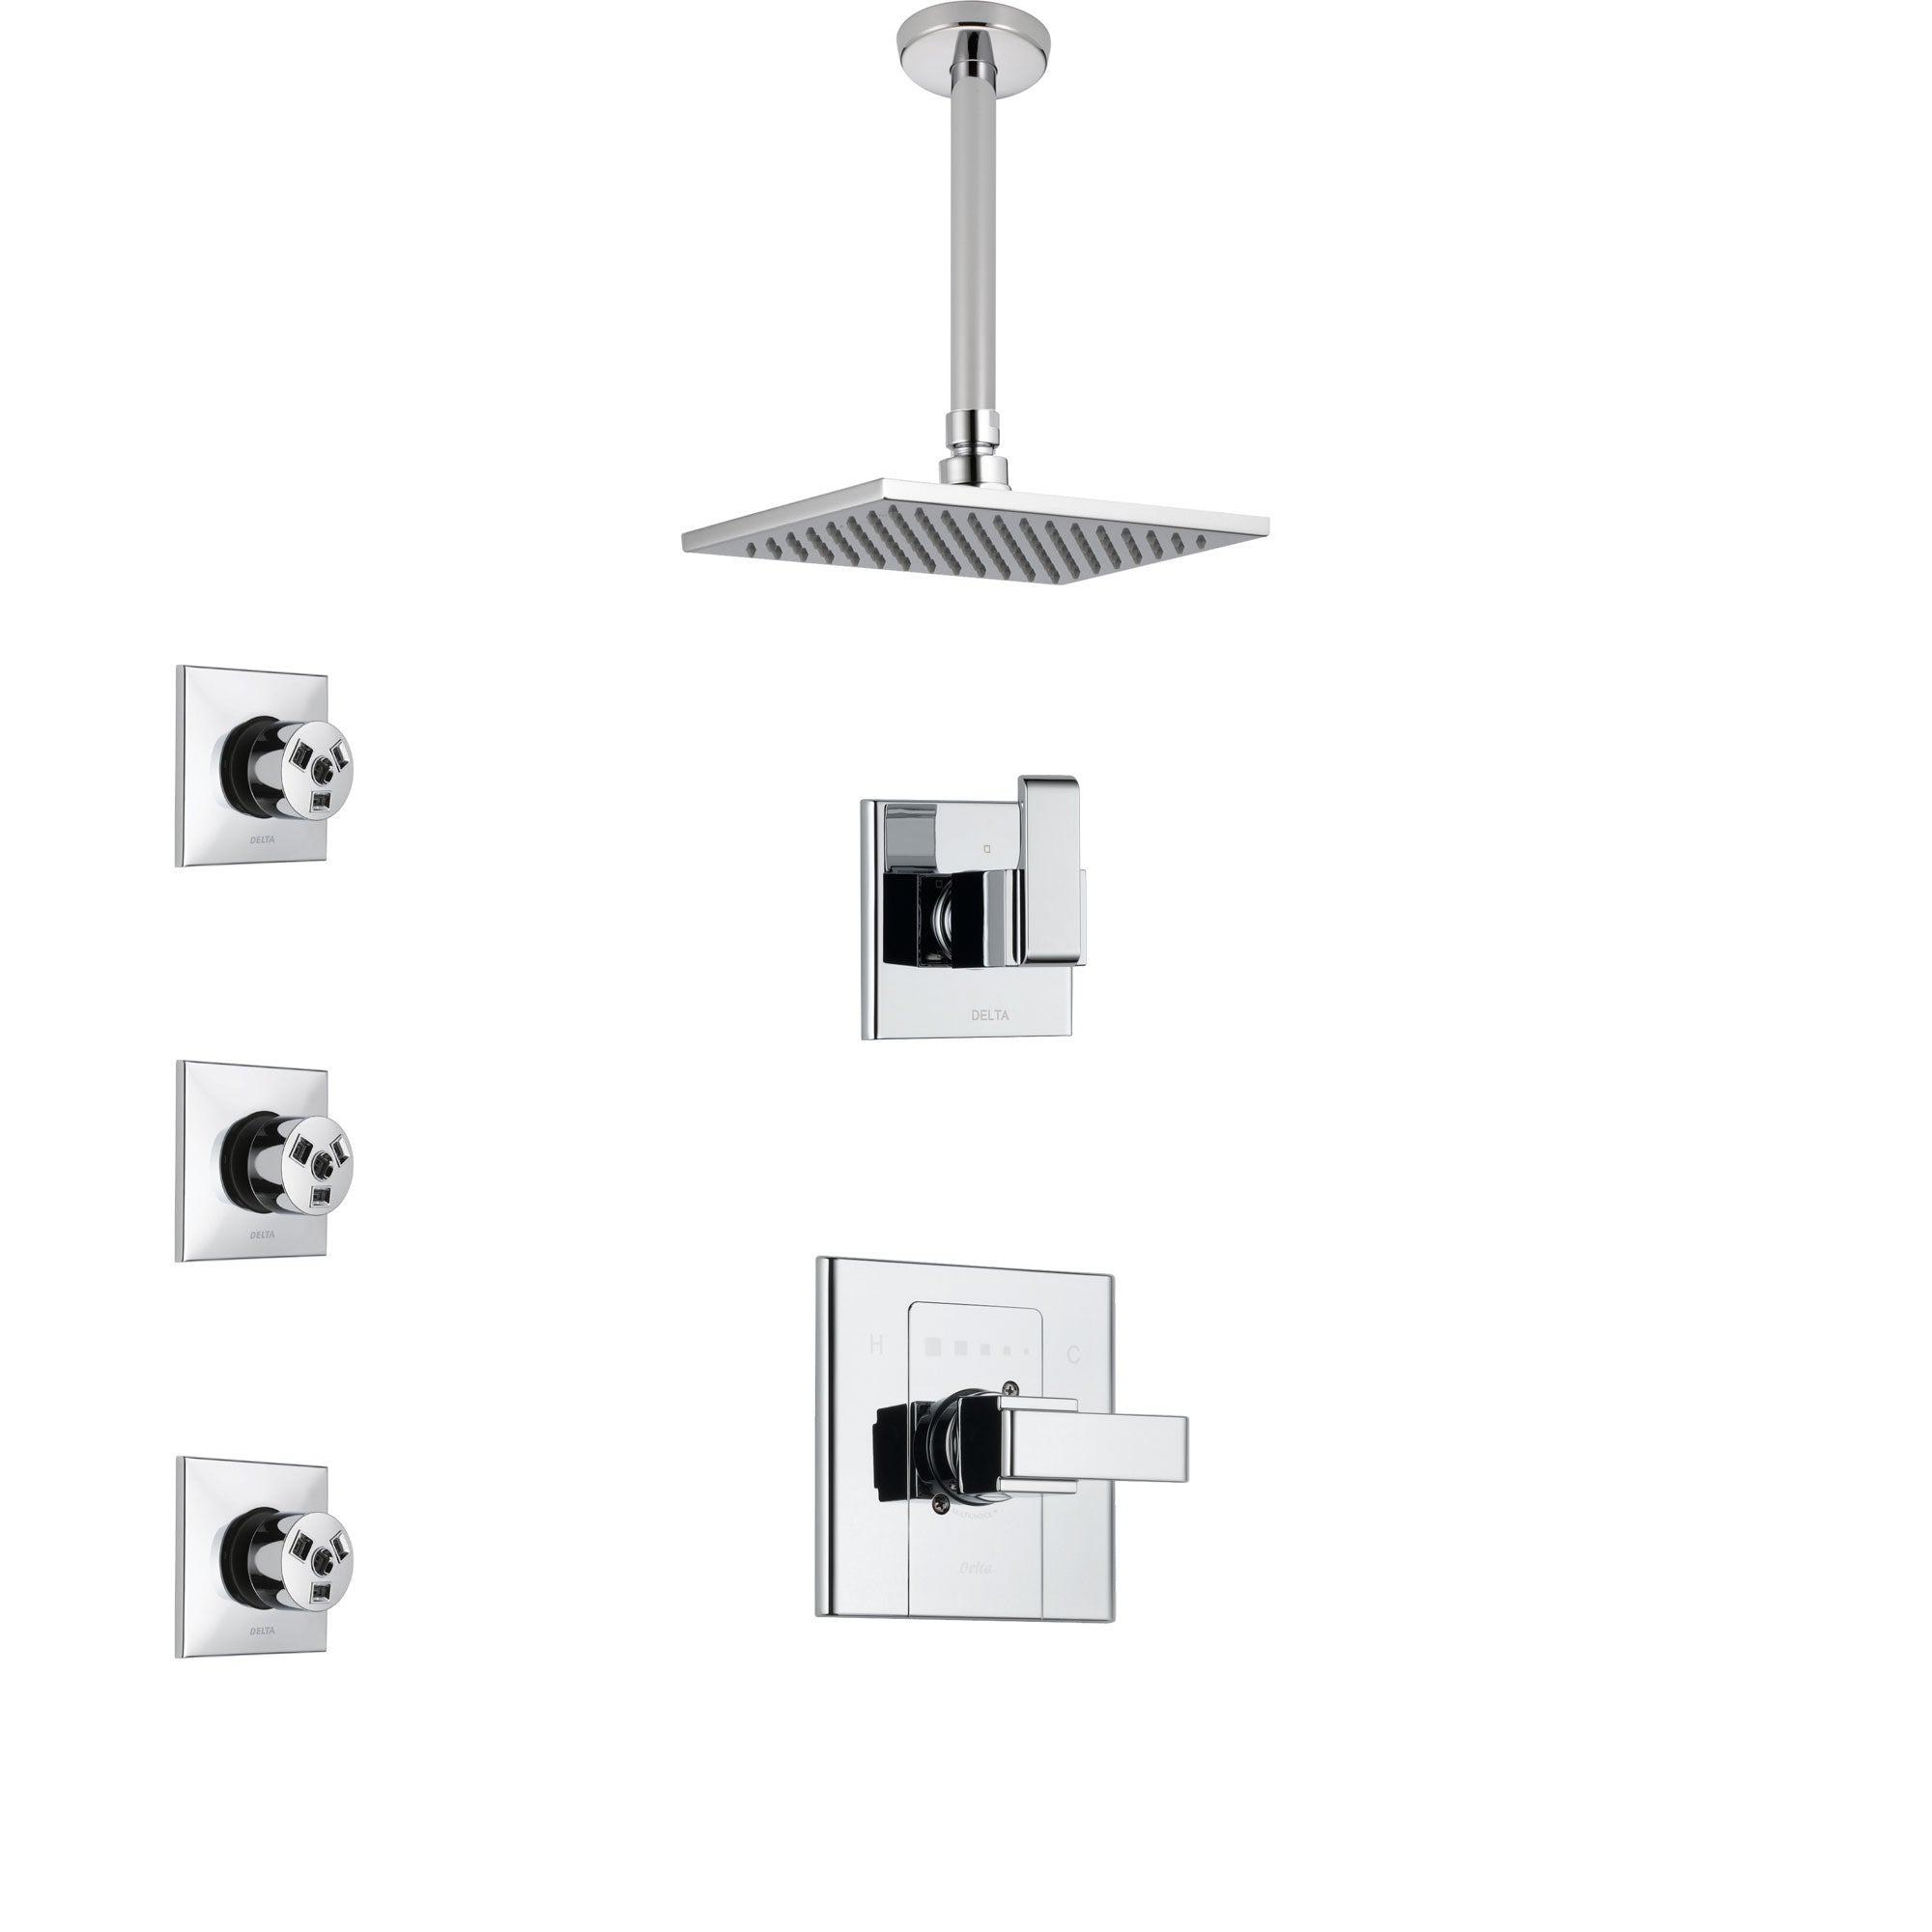 Delta Arzo Chrome Finish Shower System with Control Handle, 3-Setting Diverter, Ceiling Mount Showerhead, and 3 Body Sprays SS14867